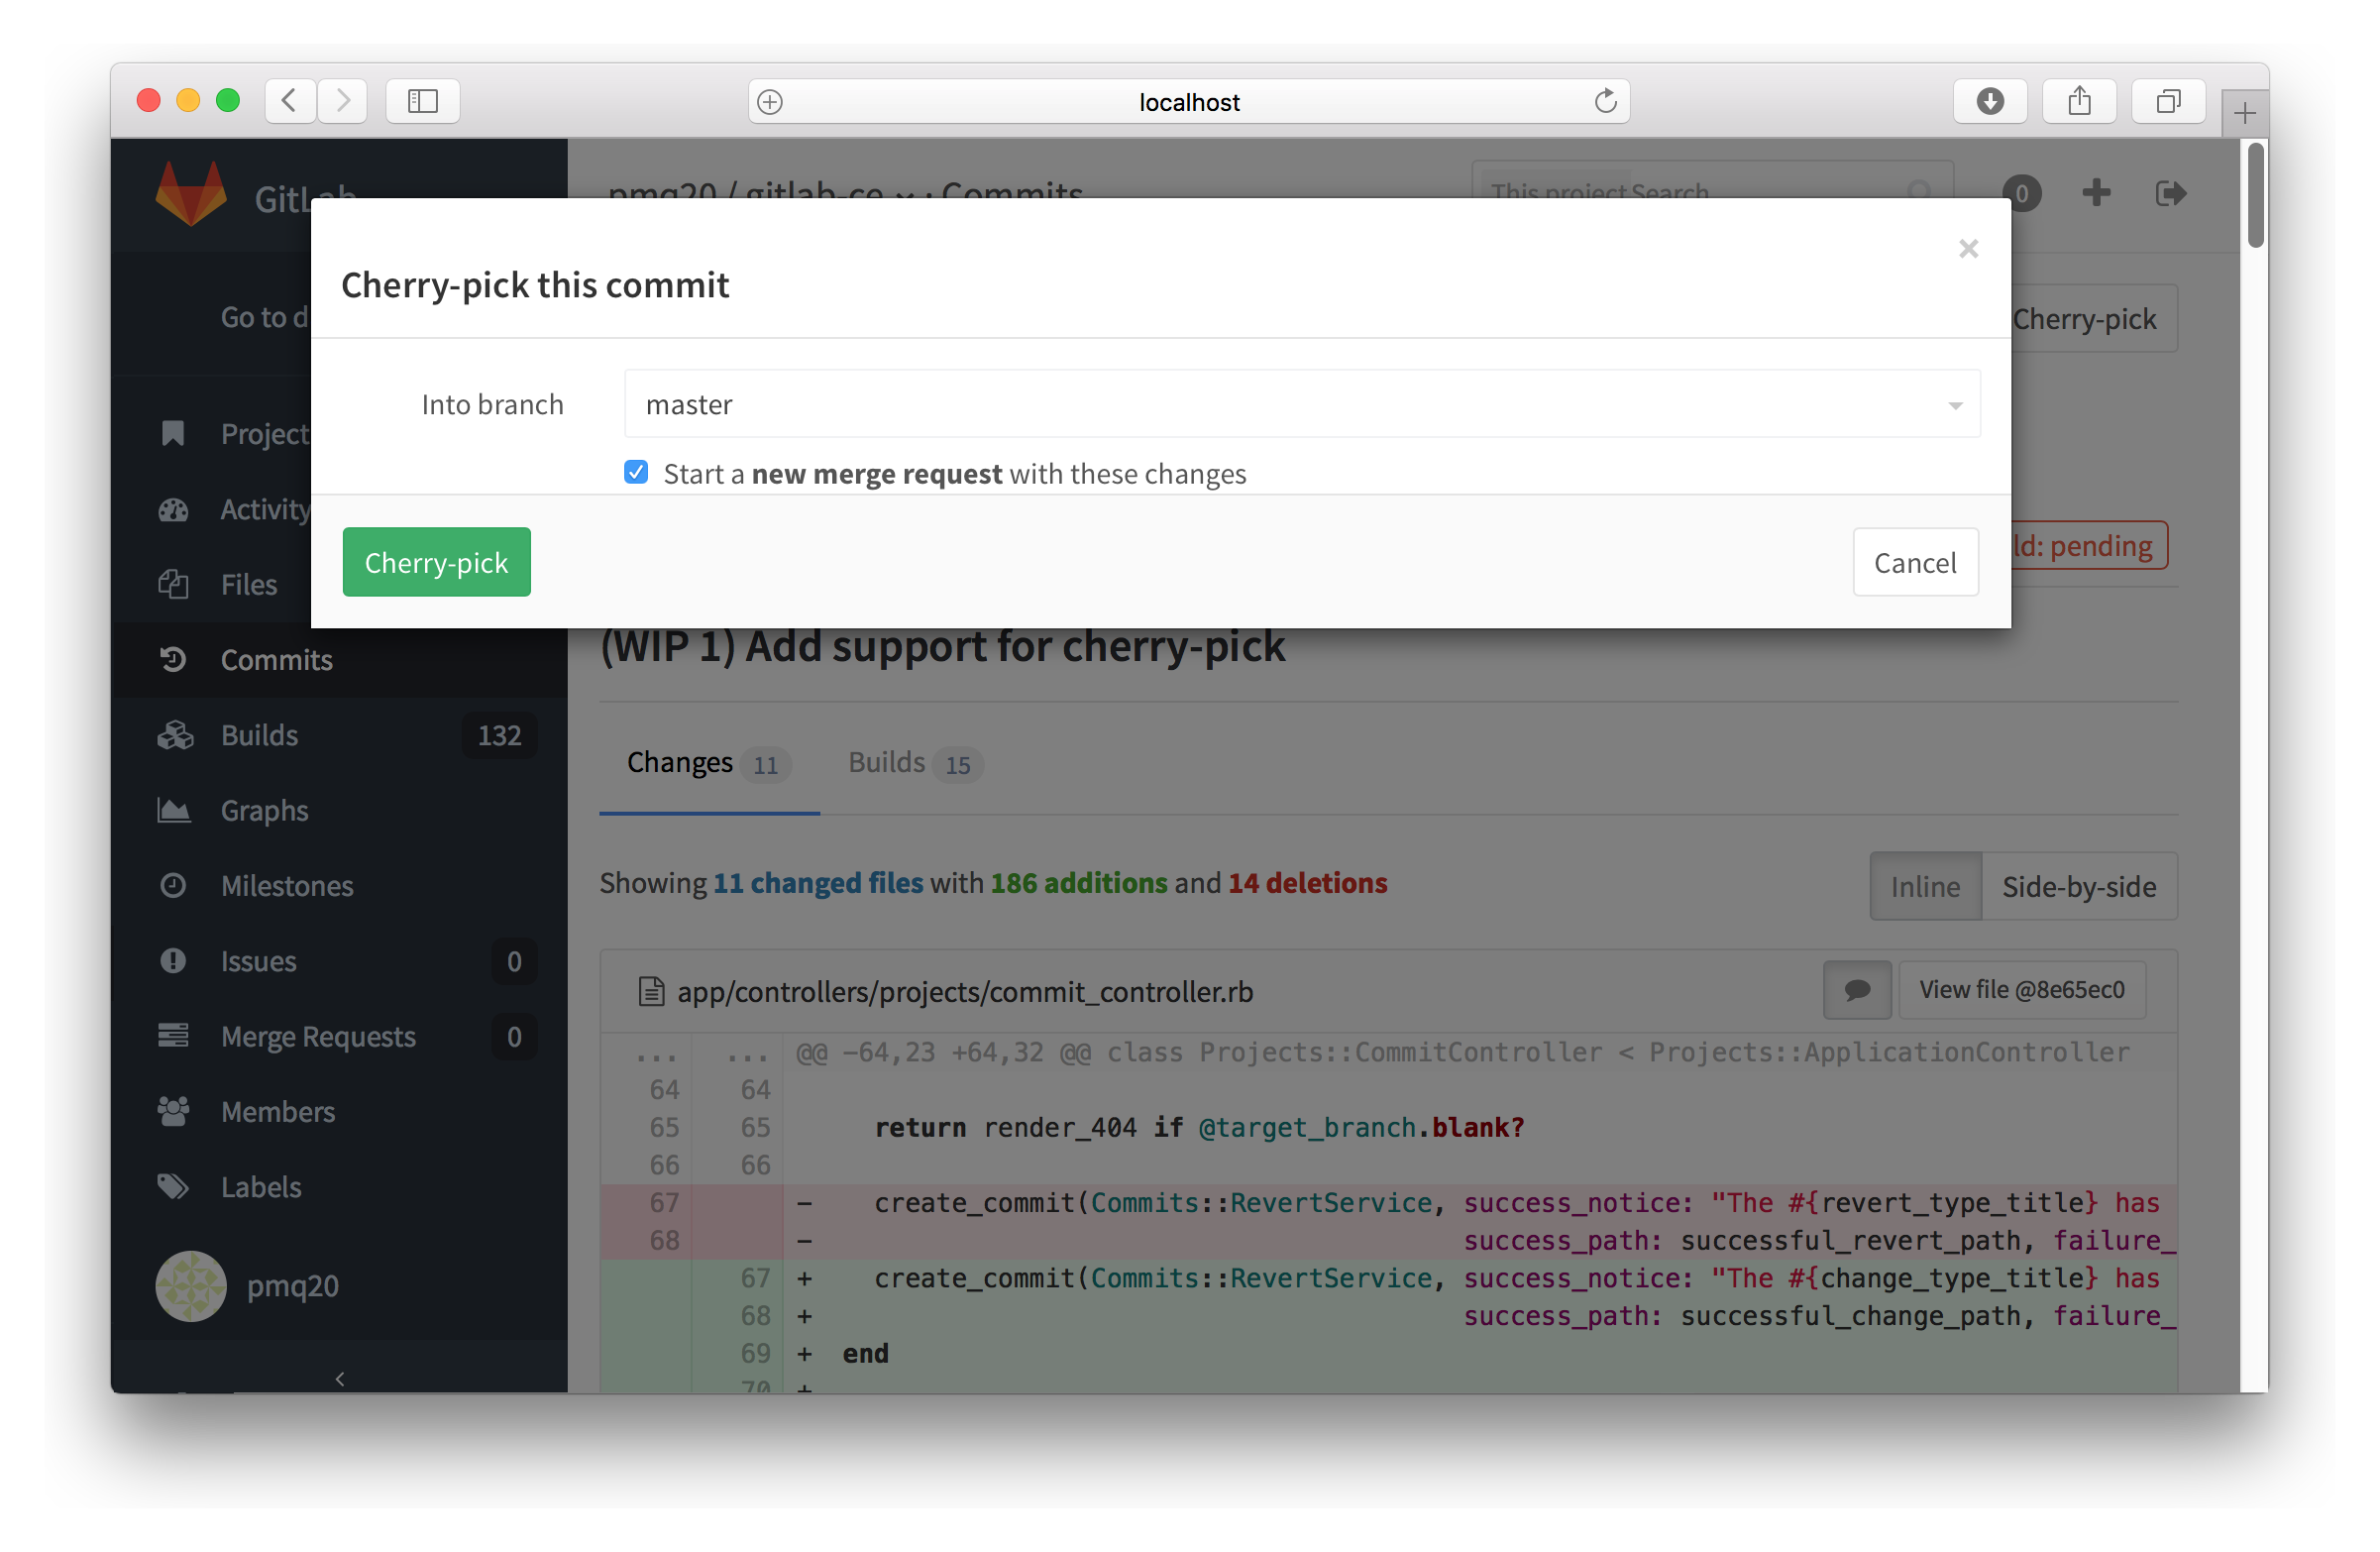 doc/workflow/img/cherry_pick_changes_commit_modal.png